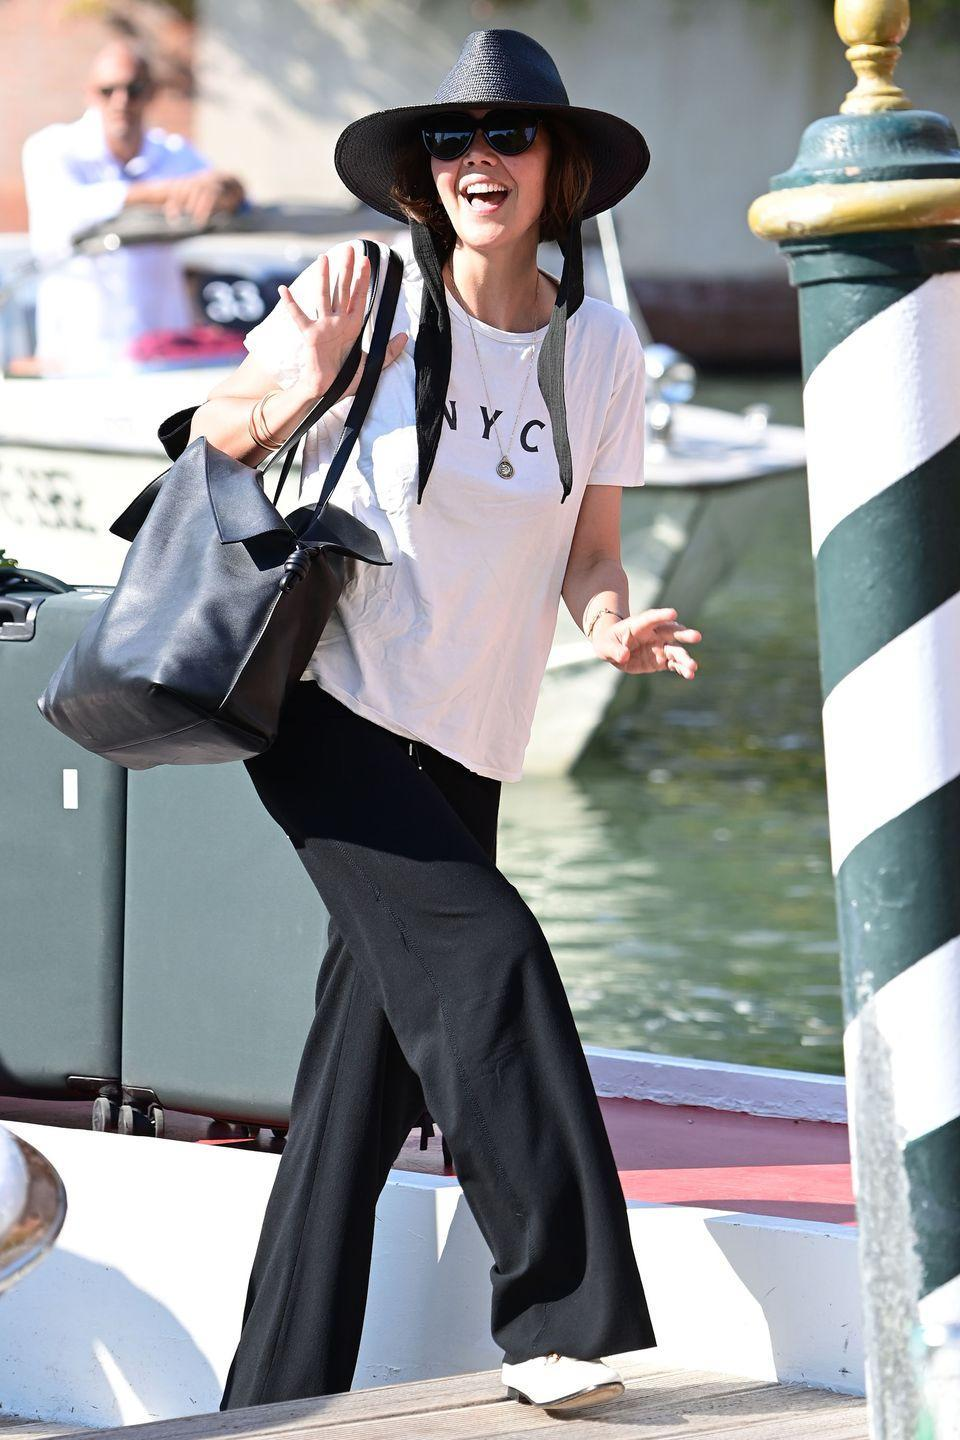 <p>Maggie Gyllenhaal arrived in Venice wearing a chic black hat to match her relaxed ensemble. </p>